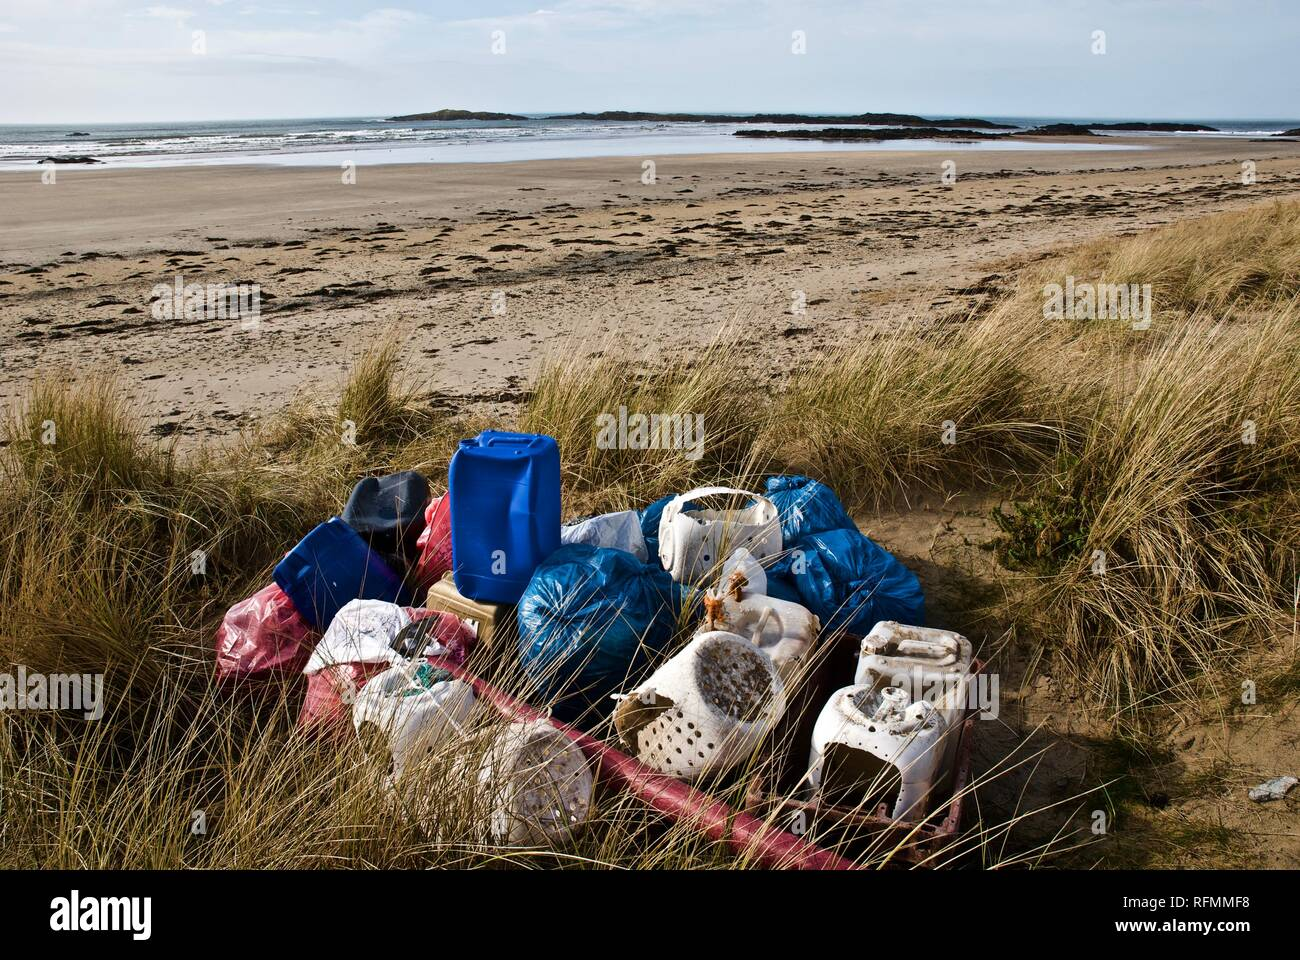 Plastic waste and pollution washed up on a beach in Rhosneigr, Anglesey, North Wales, UK - Stock Image